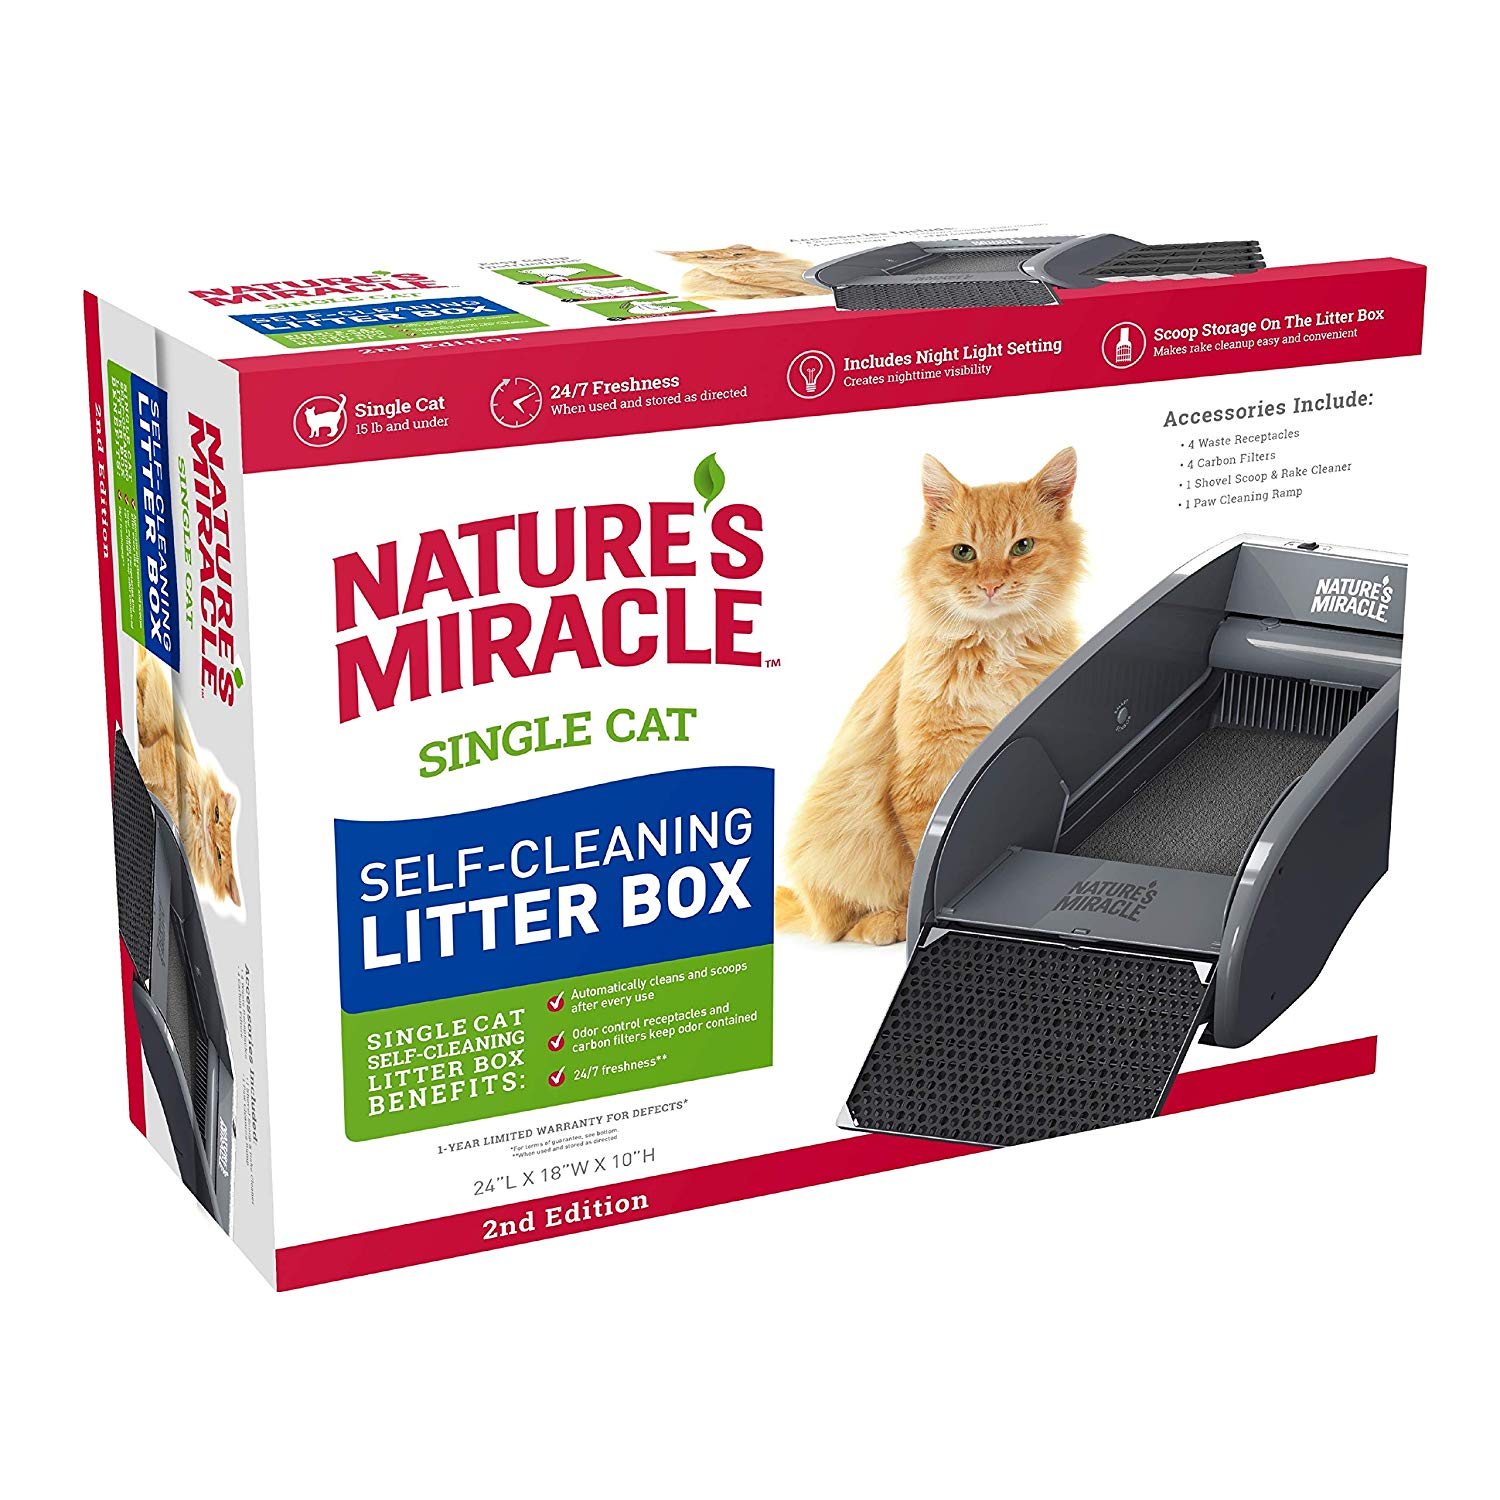 Nature's Miracle Single-Cat Self-Cleaning Litter Box